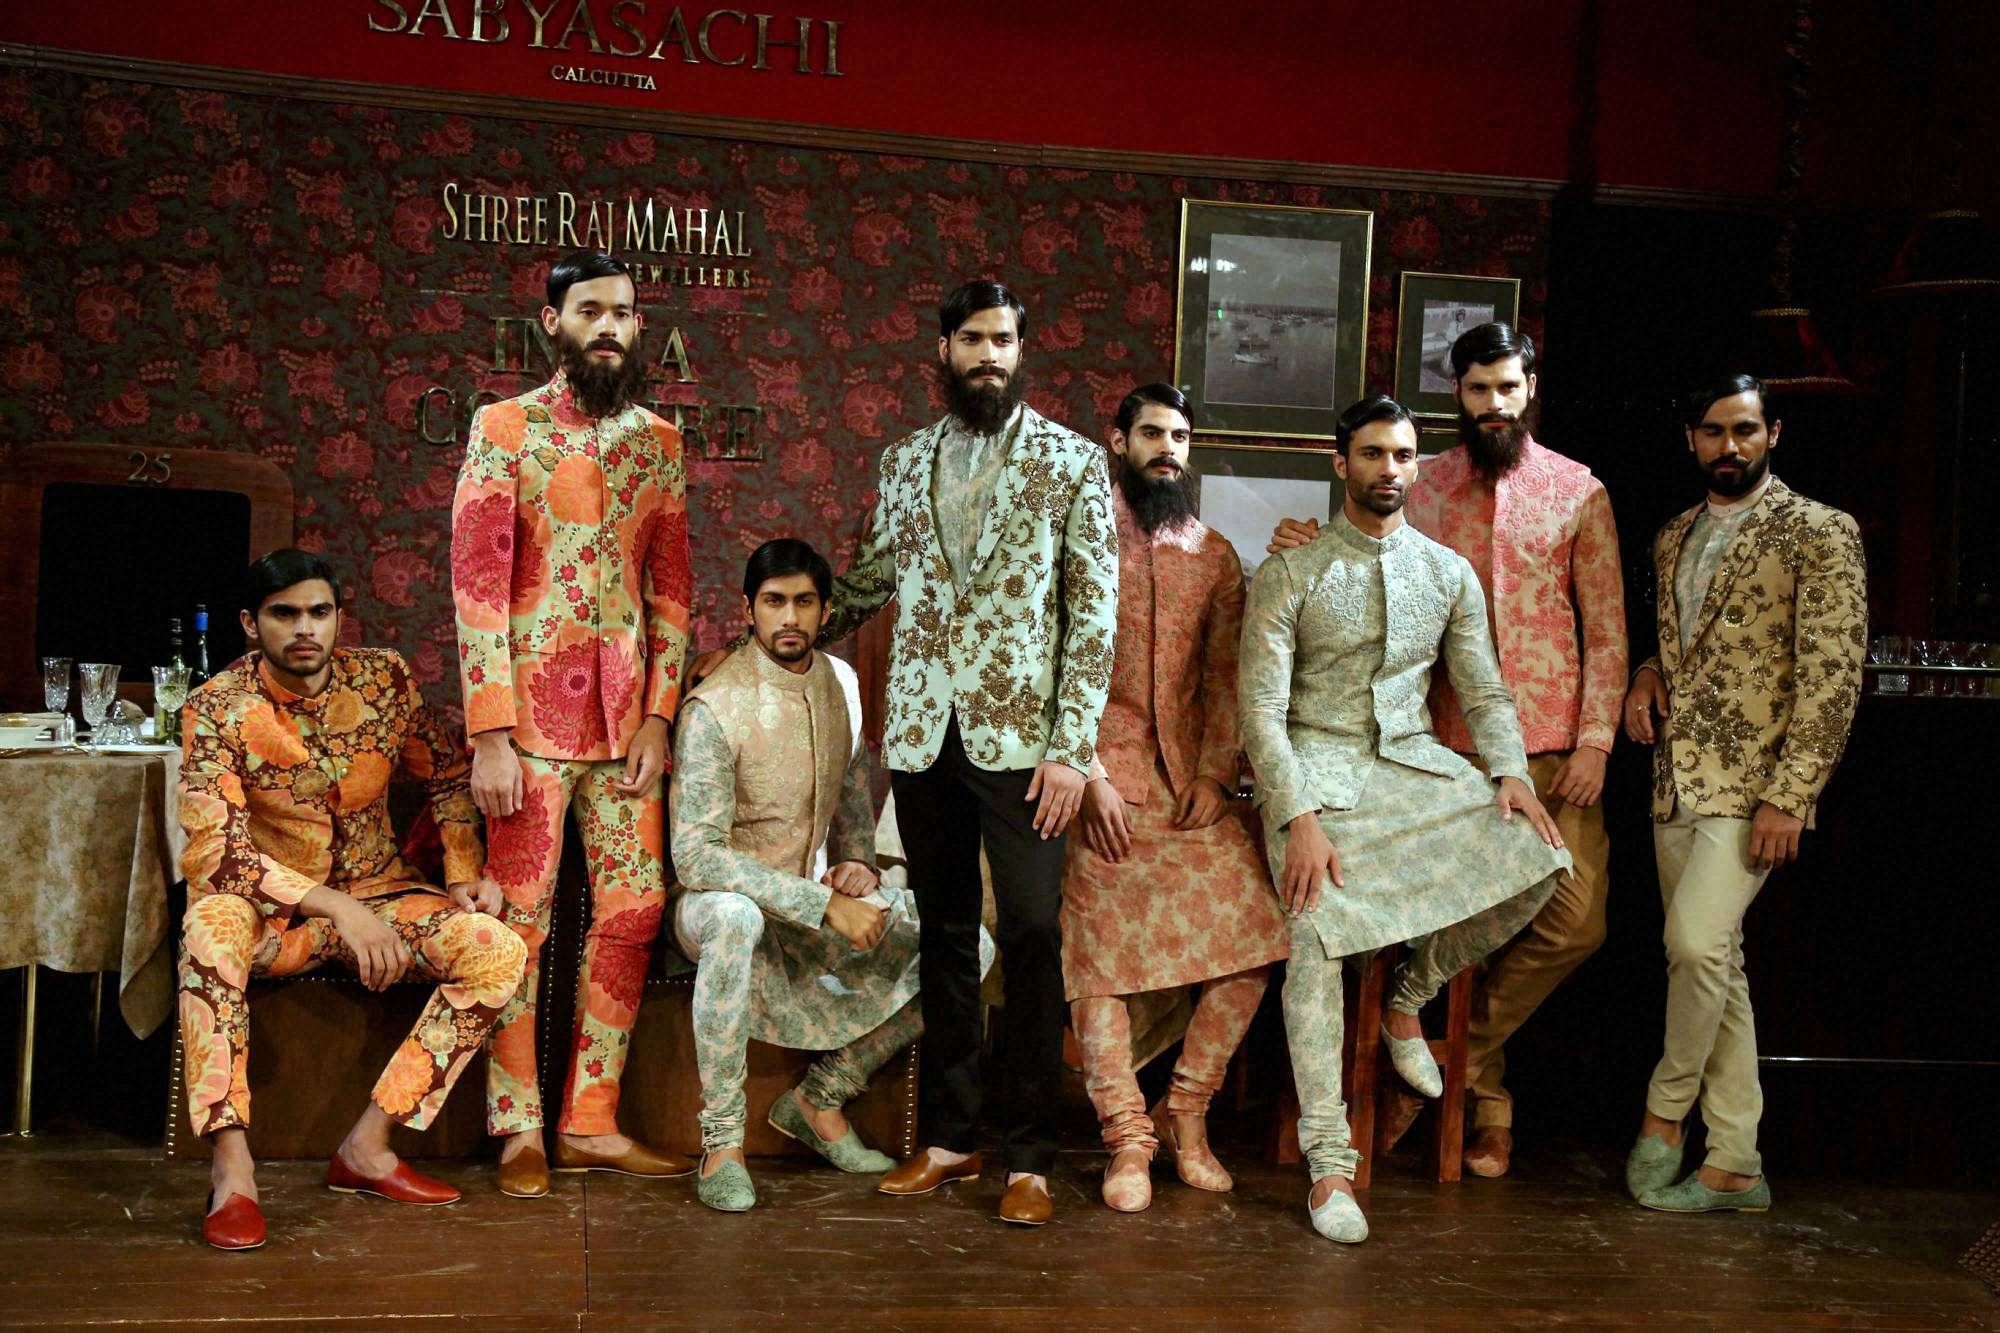 Sabyasachi Mukherjee's, creation, Ferozabad, showcased, the India Couture Week 2014, New Delhi